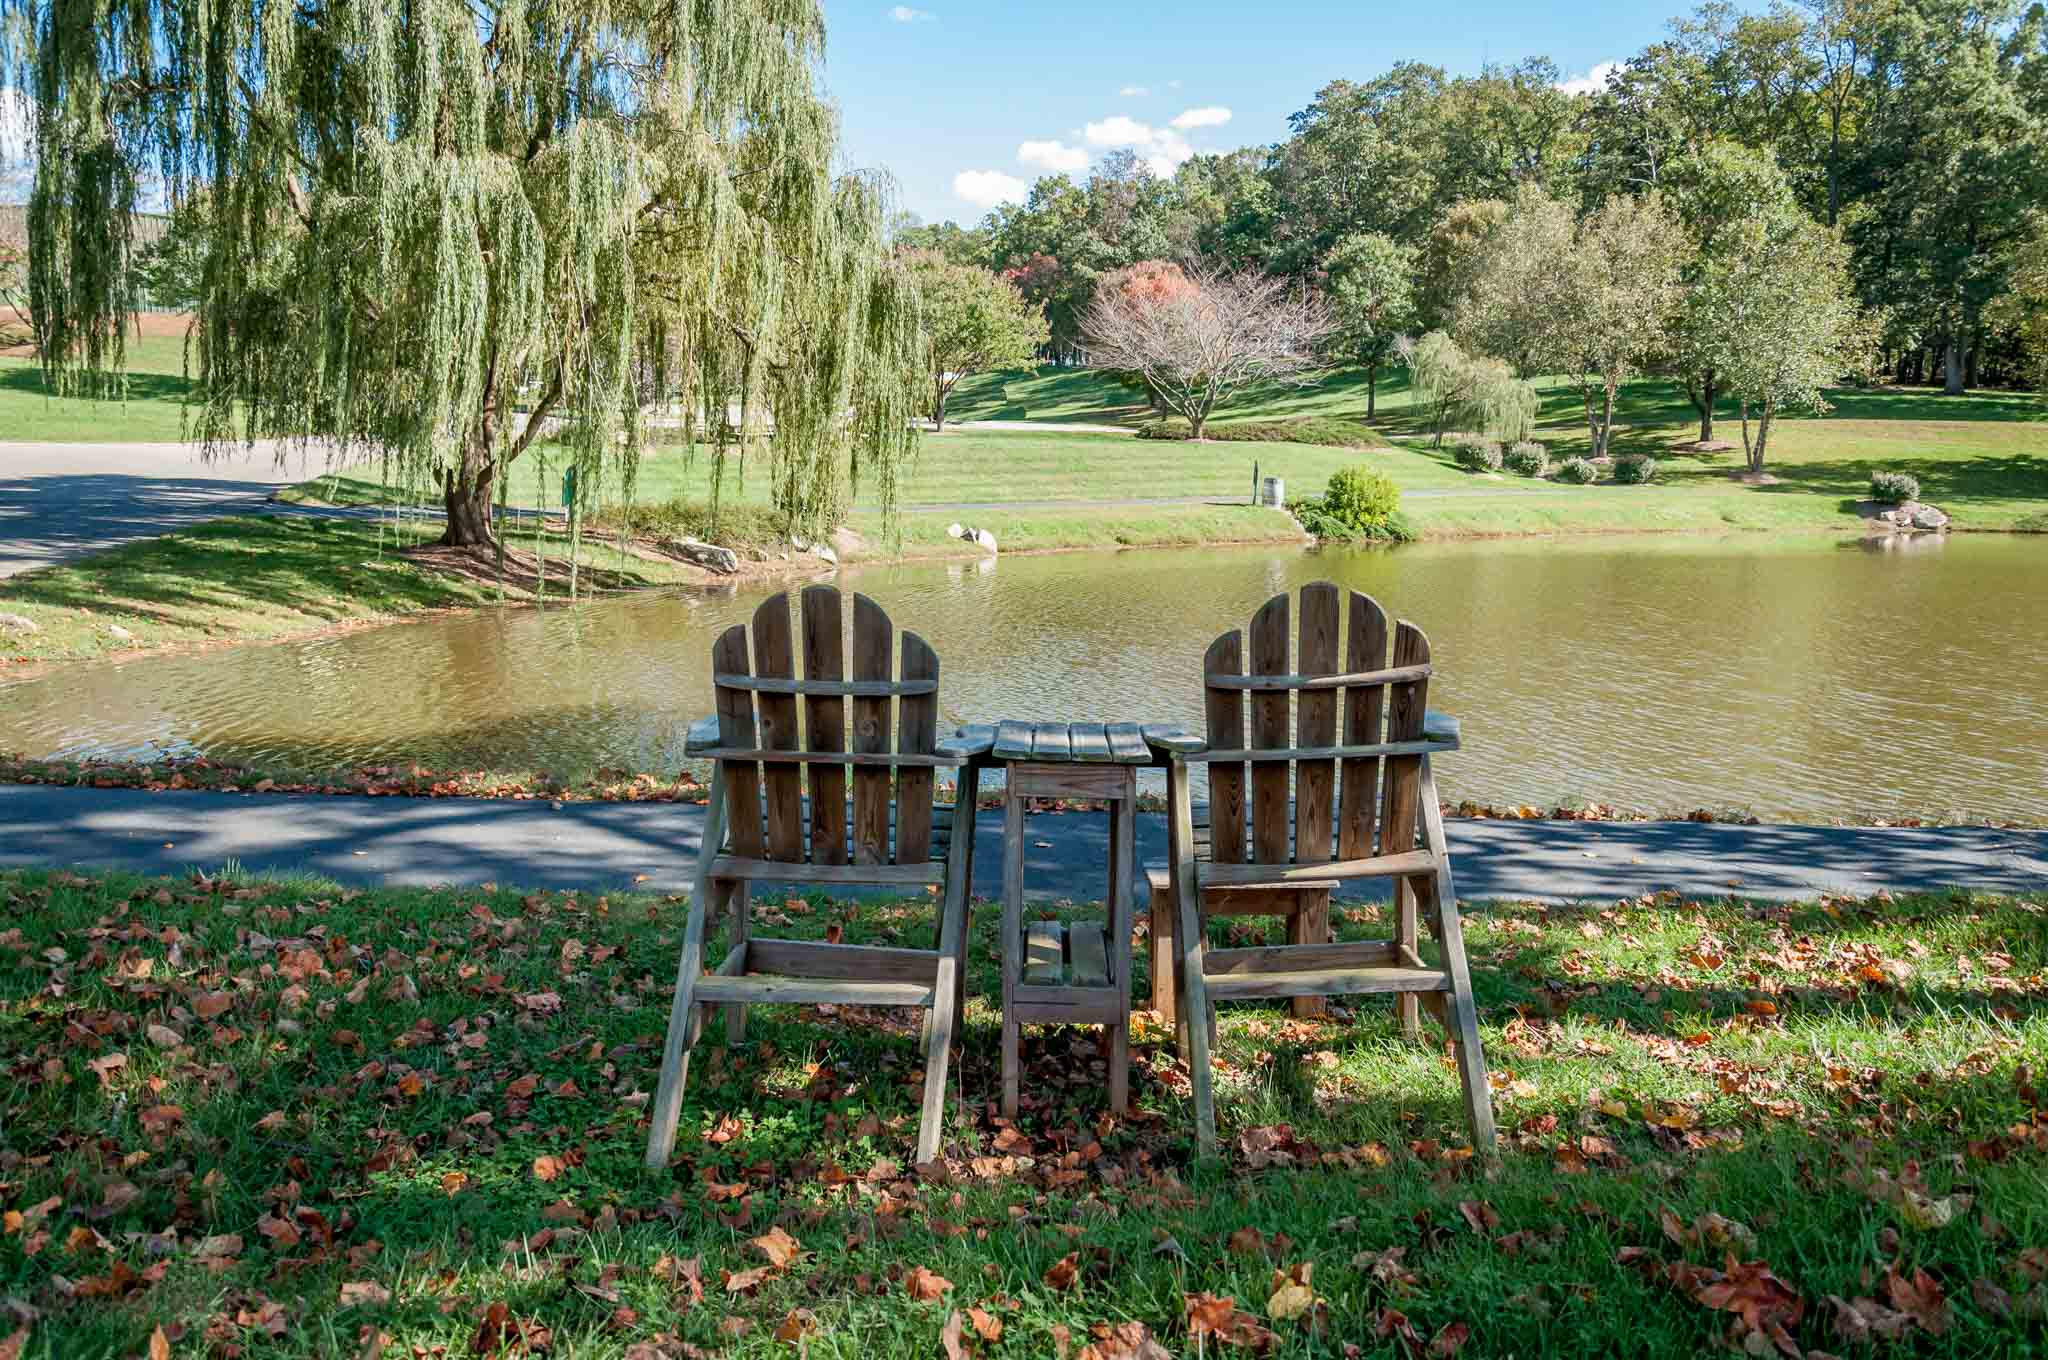 The beautiful grounds of Shelton Vineyards in Dobson, North Carolina, one of the Yadkin Valley wineries